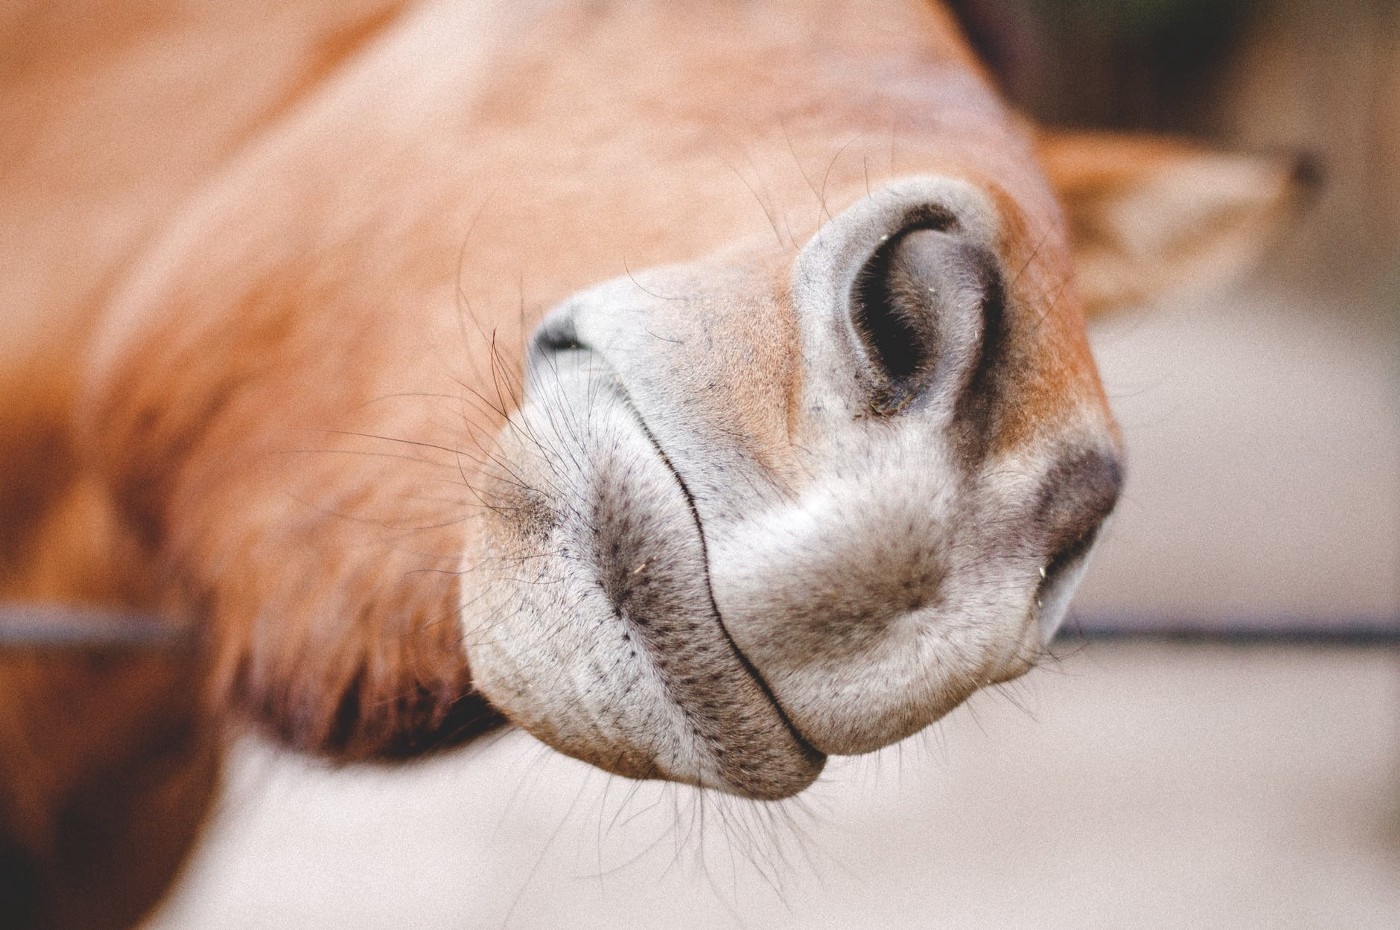 a horse extending his nose to the person taking the picture